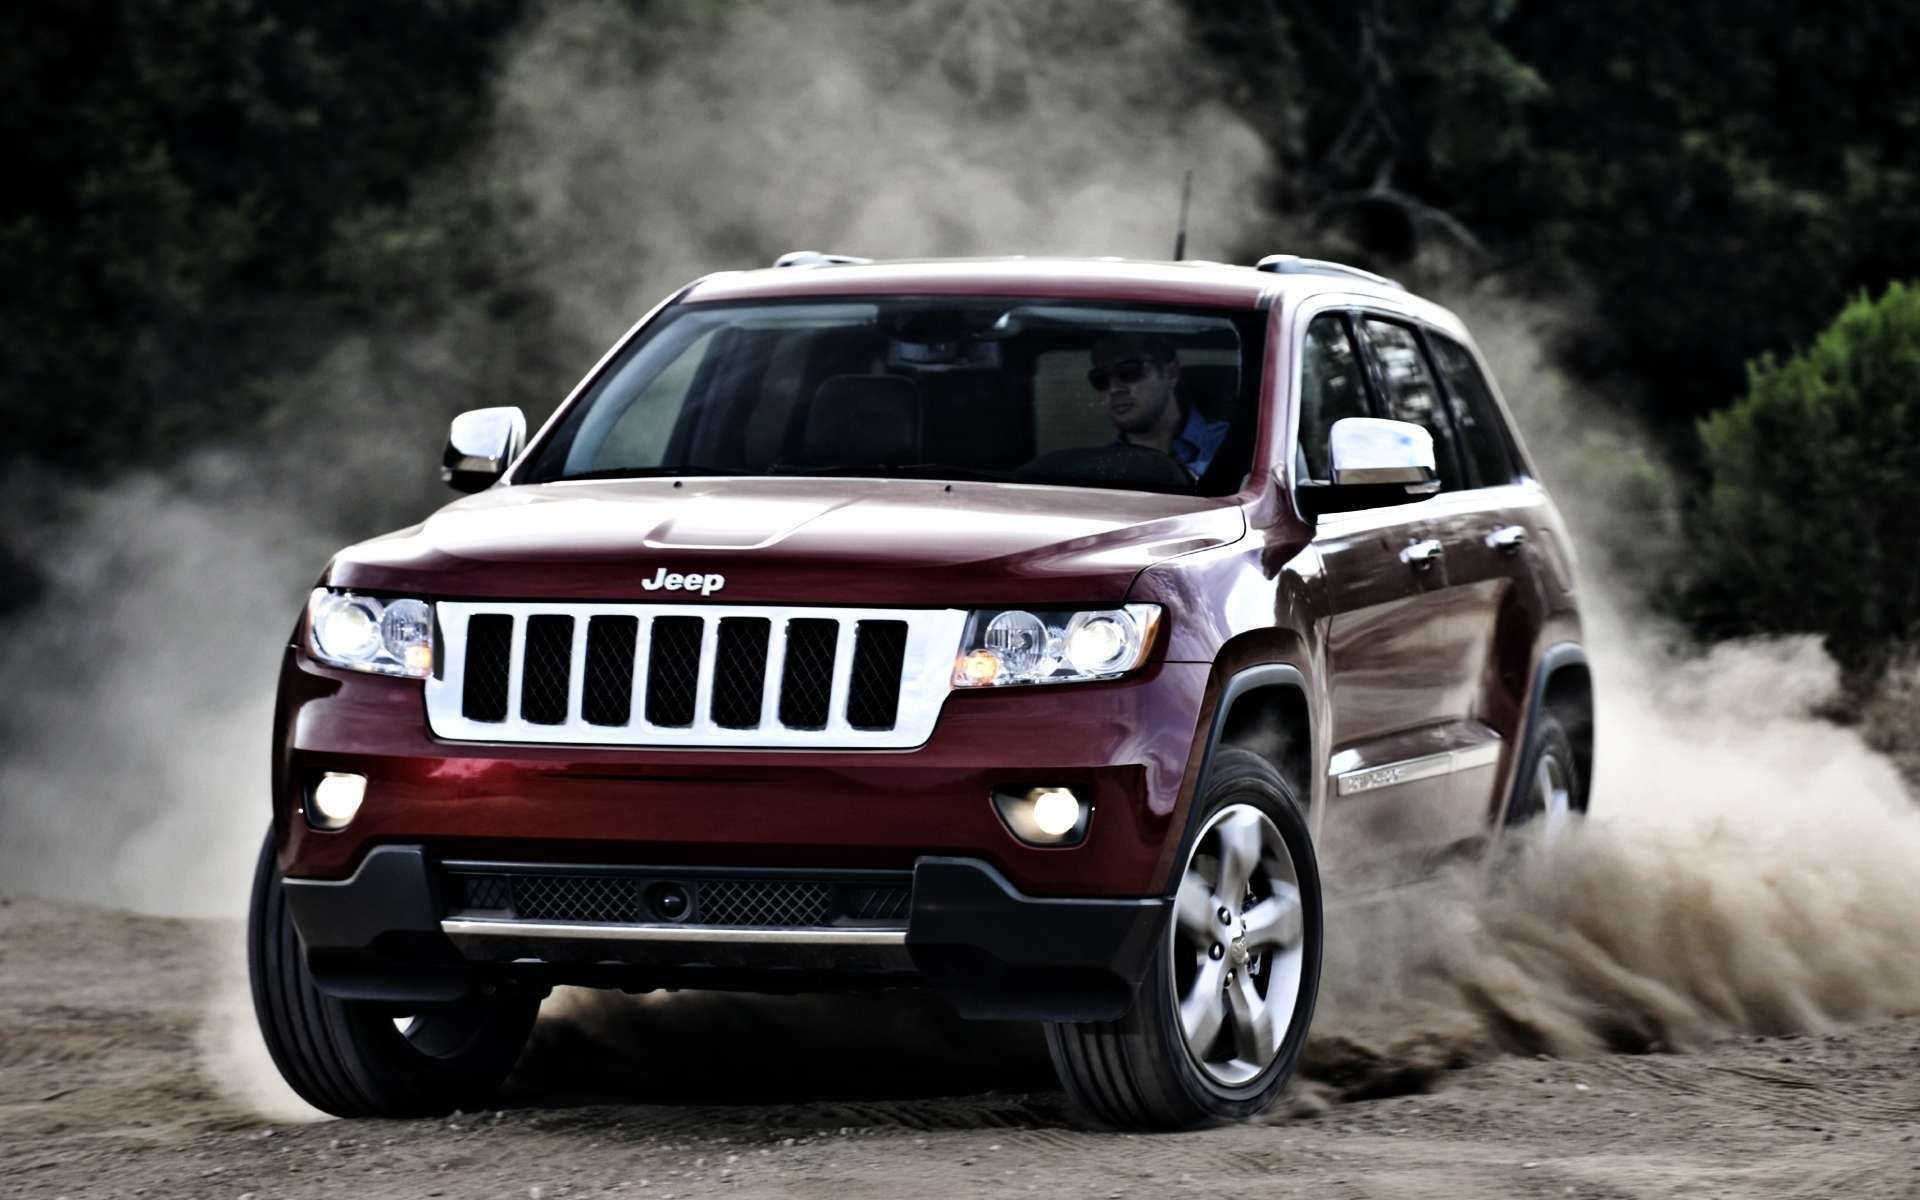 Jeep Grand Cherokee Specification details